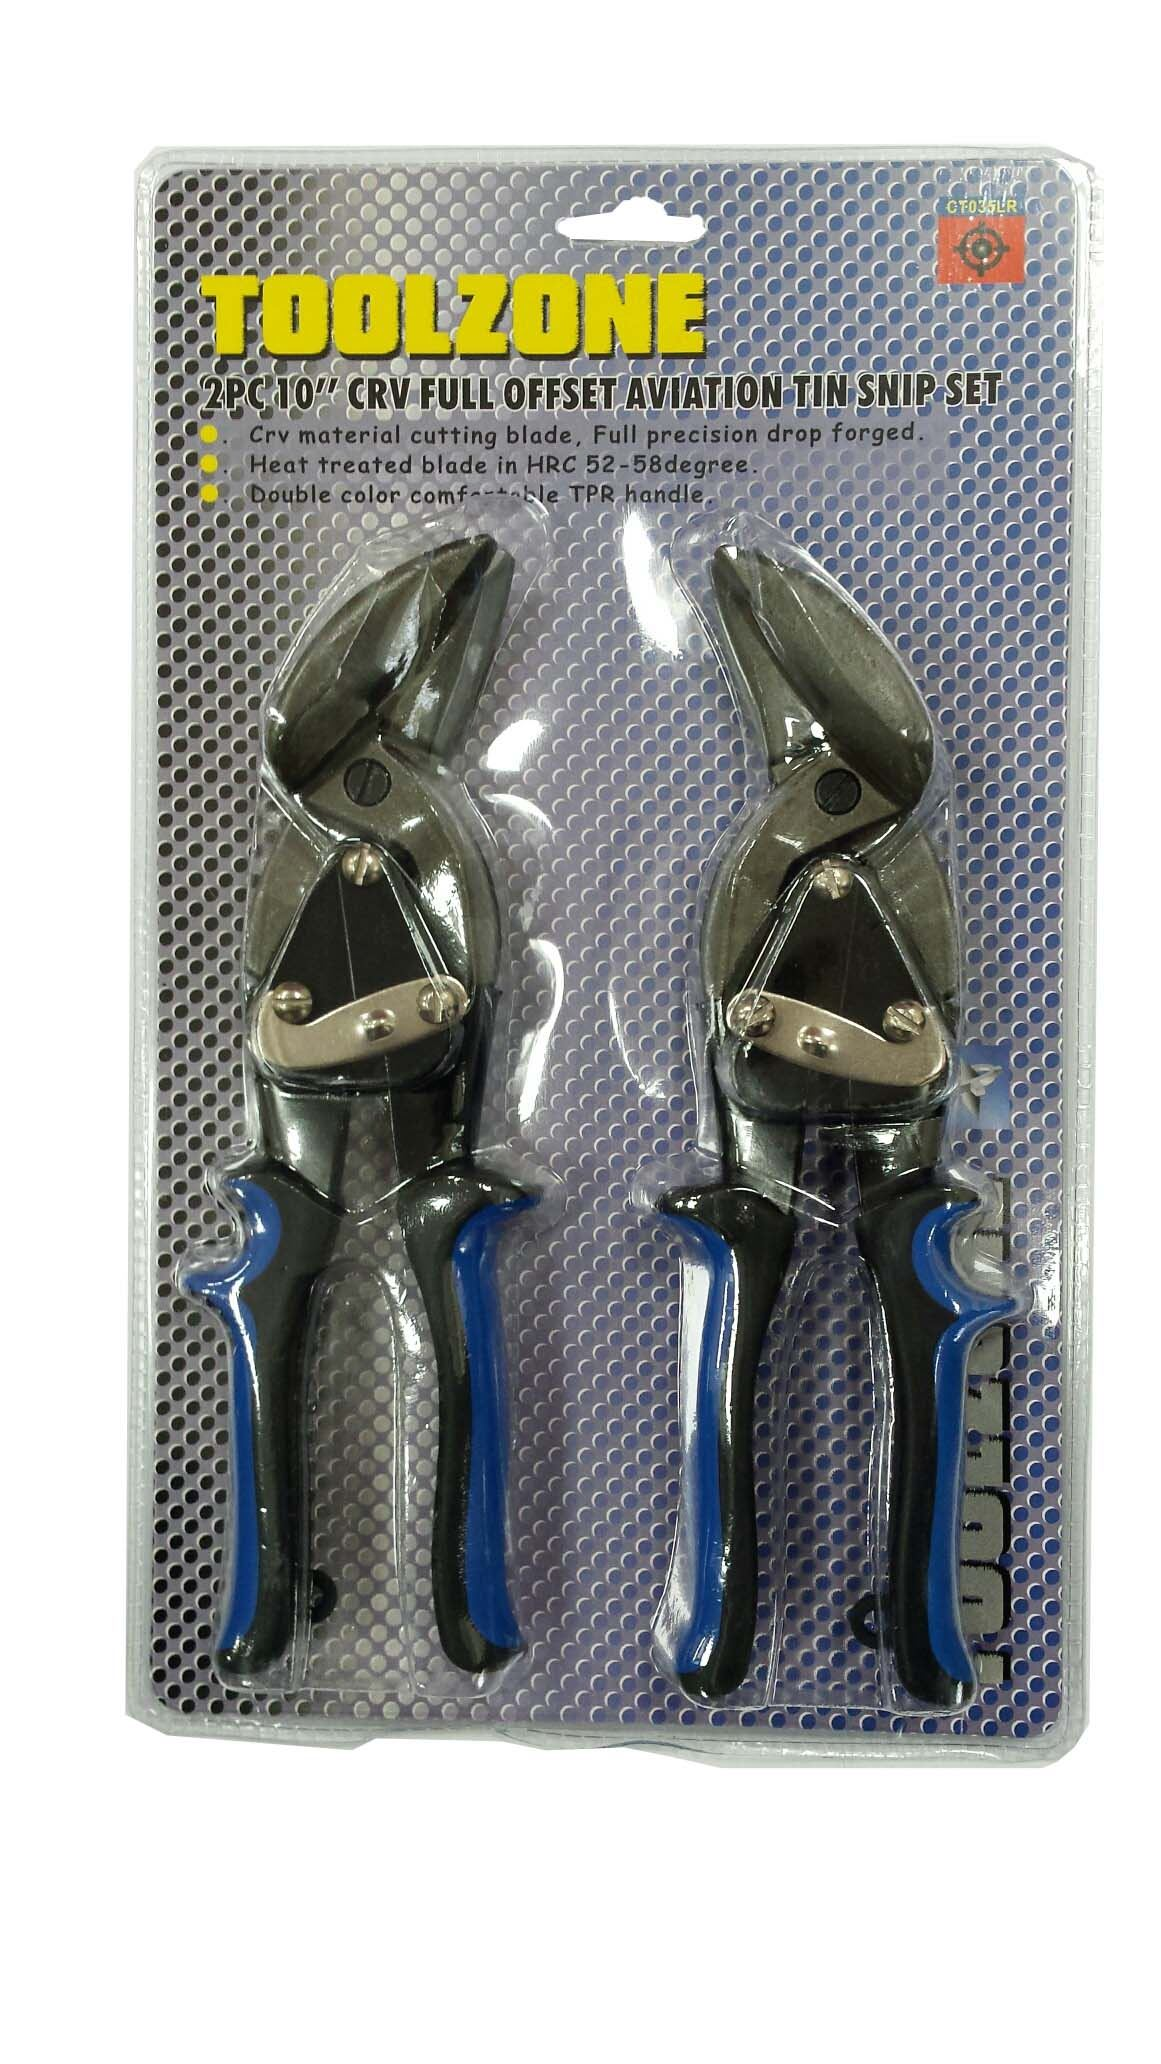 Toolzone 2Pc Fully Offset Aviation Snips